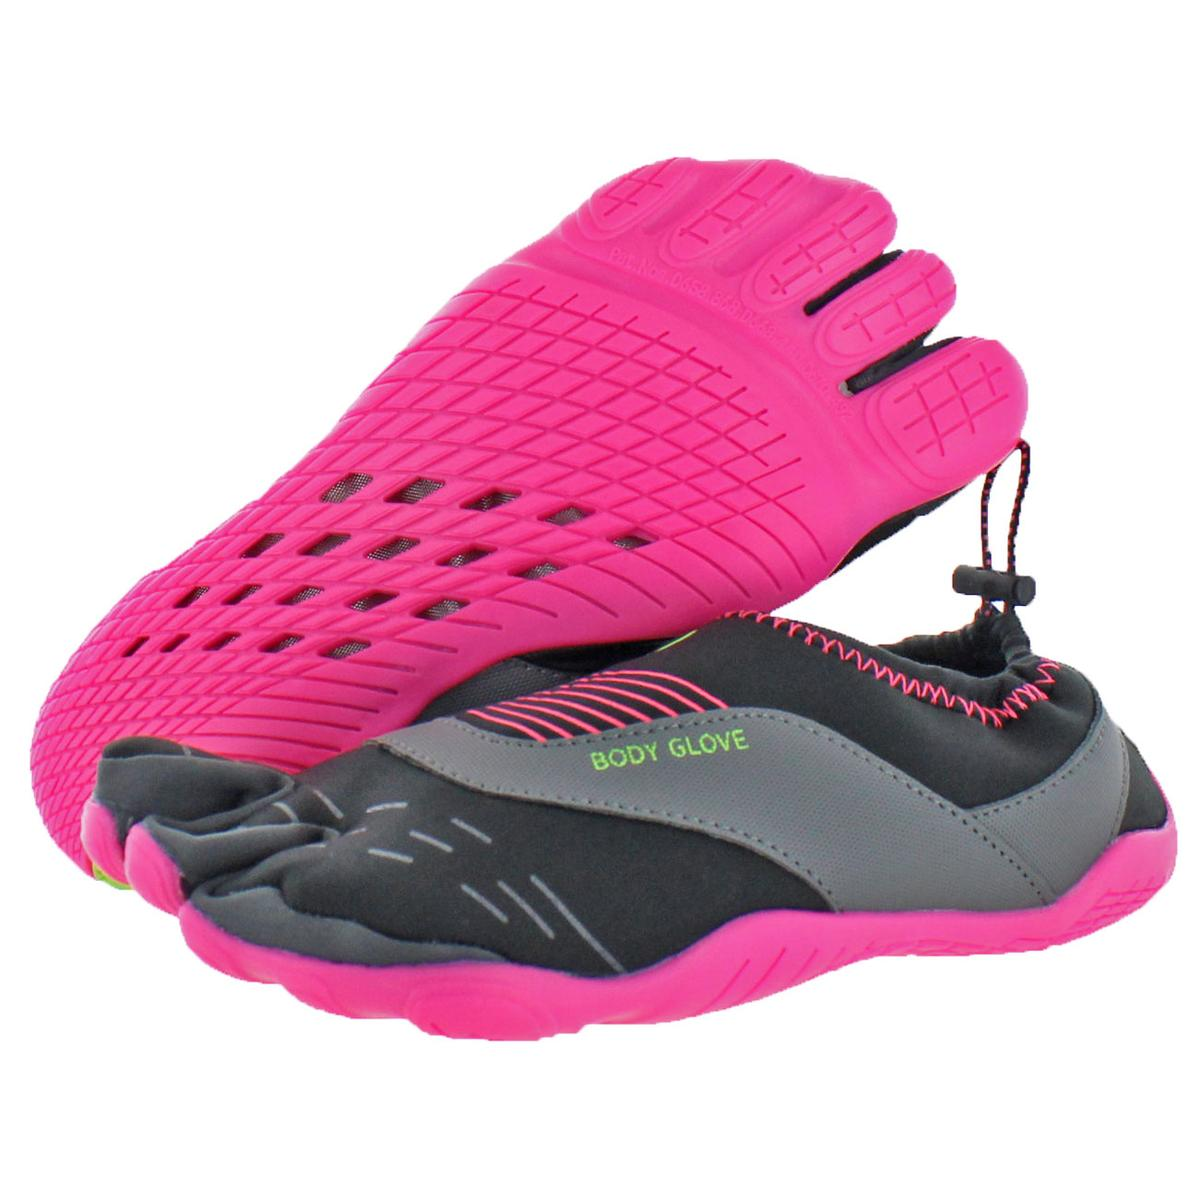 Body-Glove-Women-039-s-Cinch-Neoprene-Barefoot-Minimalist-Three-Toe-Water-Shoes thumbnail 4